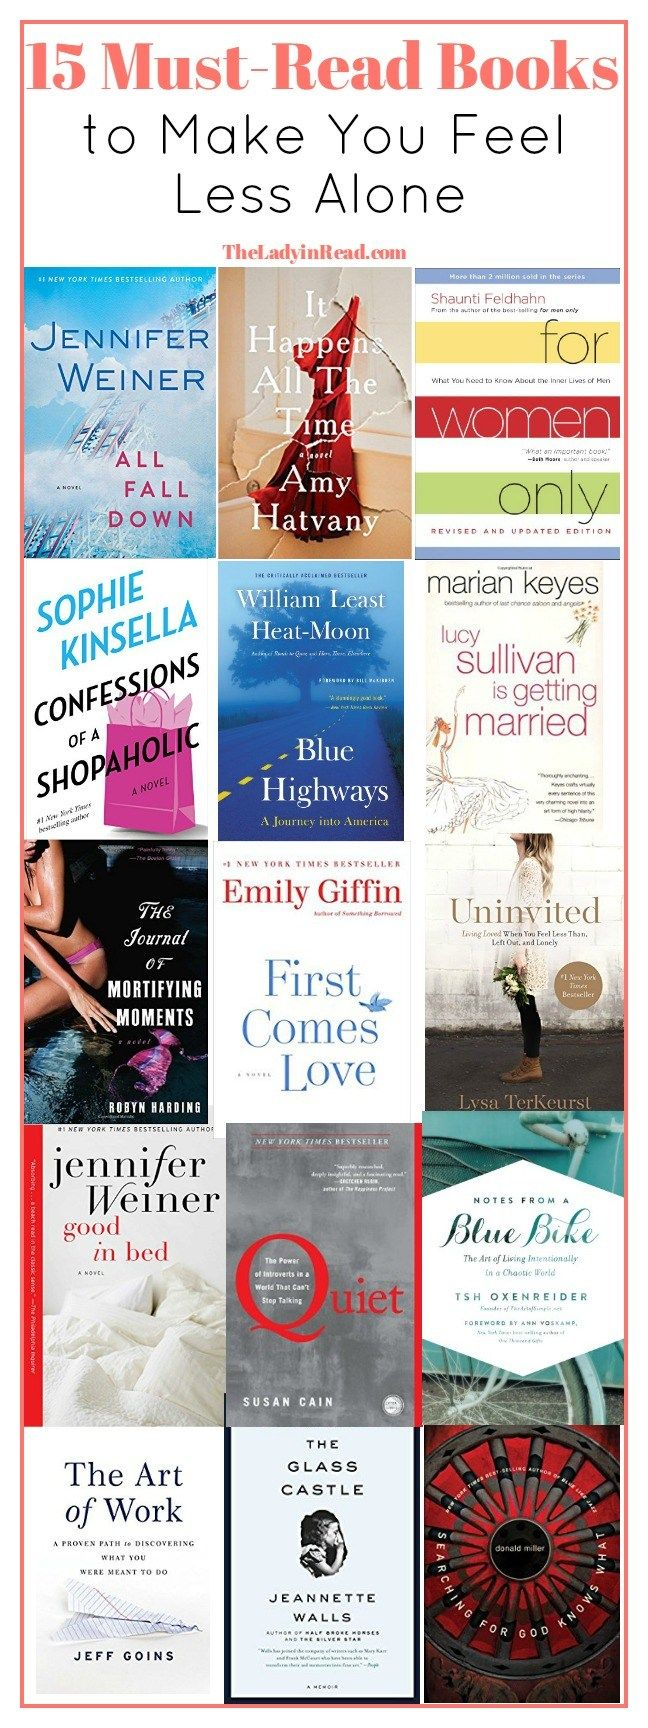 15 Must-Read Books to Make You Feel Less Alone from TheLadyinRead.com >> book recommendations, must read books, contemporary ficiton, women's ficiton, contemporary romance, chick lit, travel memoirs, best books